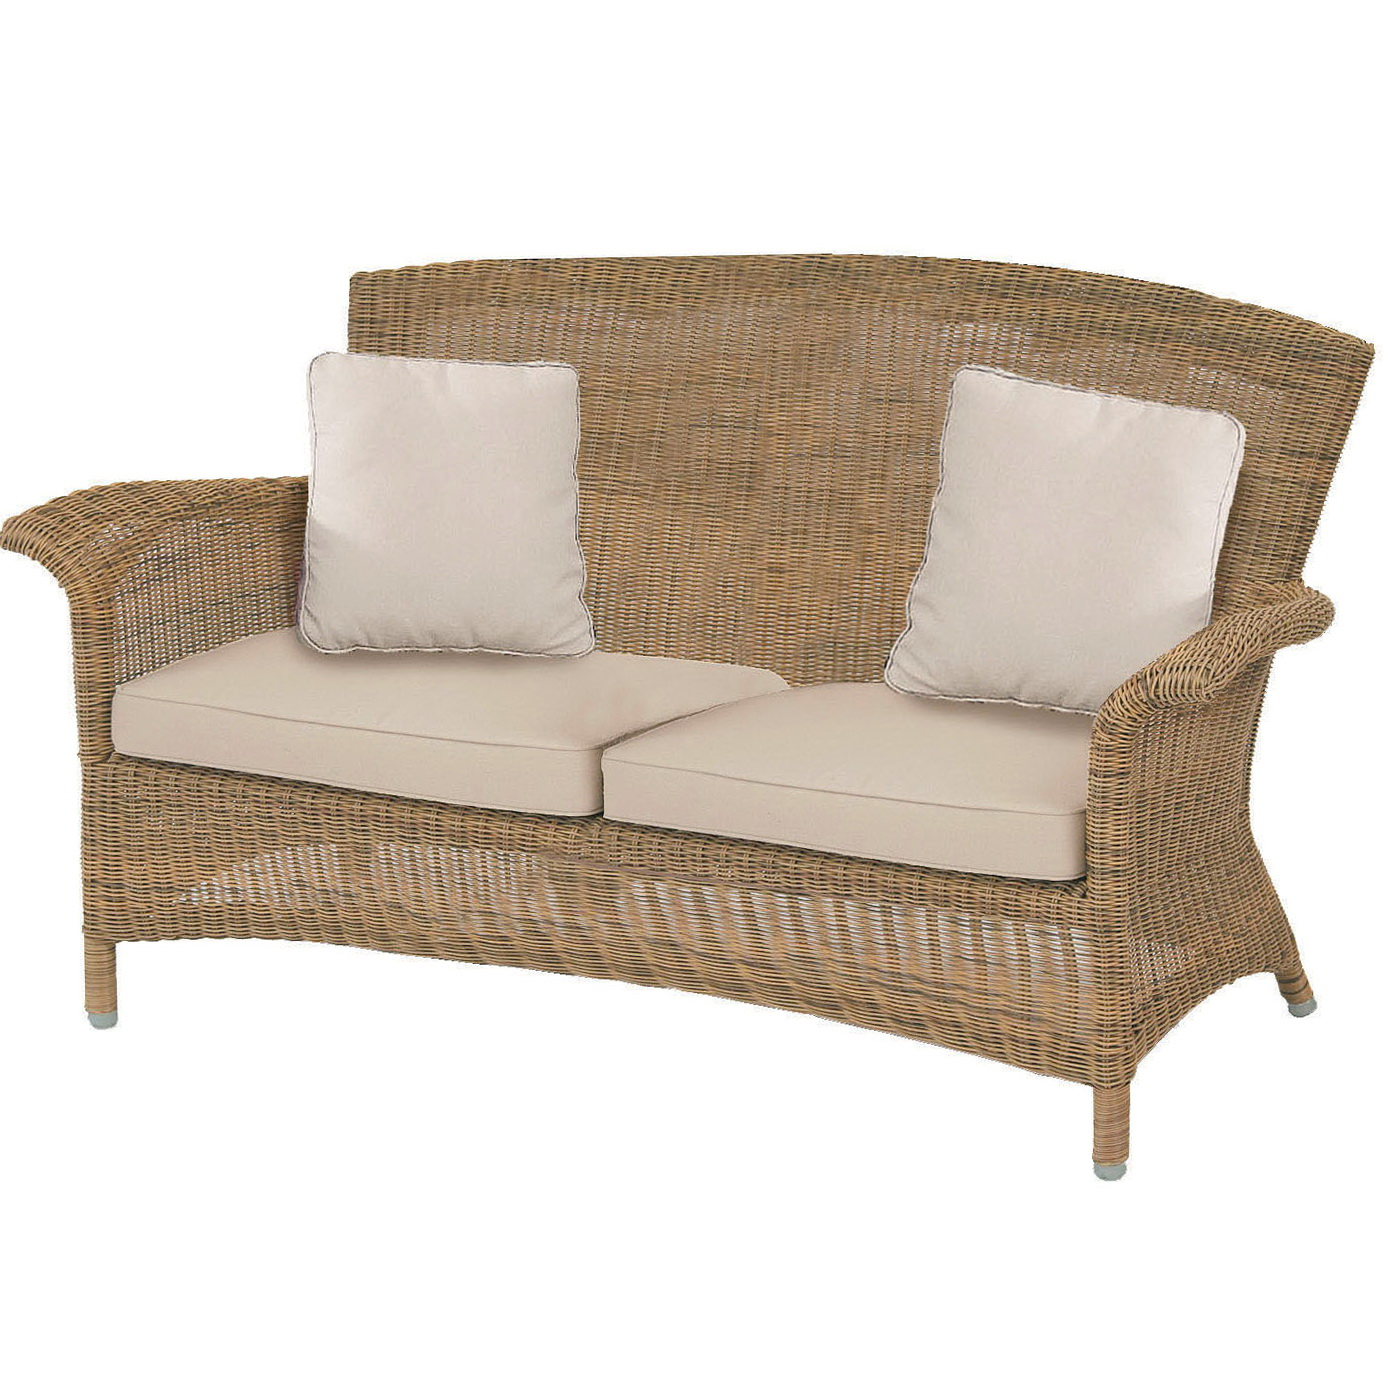 chair seat covers dunelm chairs that recline into beds foam for sofa cushions home the honoroak